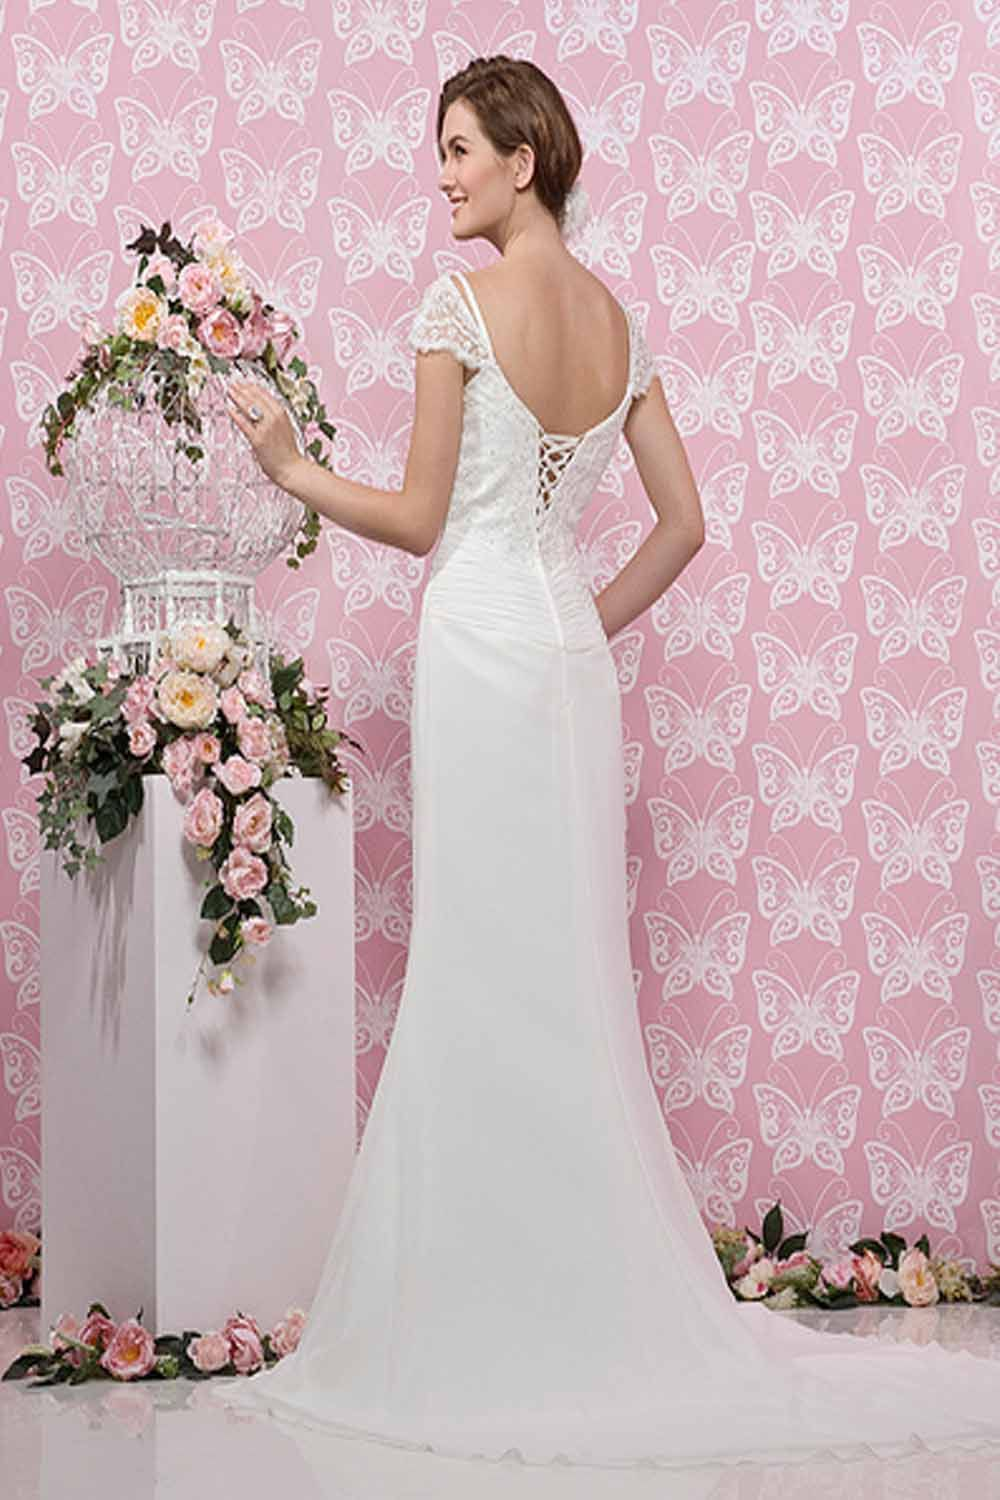 100+ Vera Wang Wedding Dresses Rent - Best Dresses for Wedding Check ...